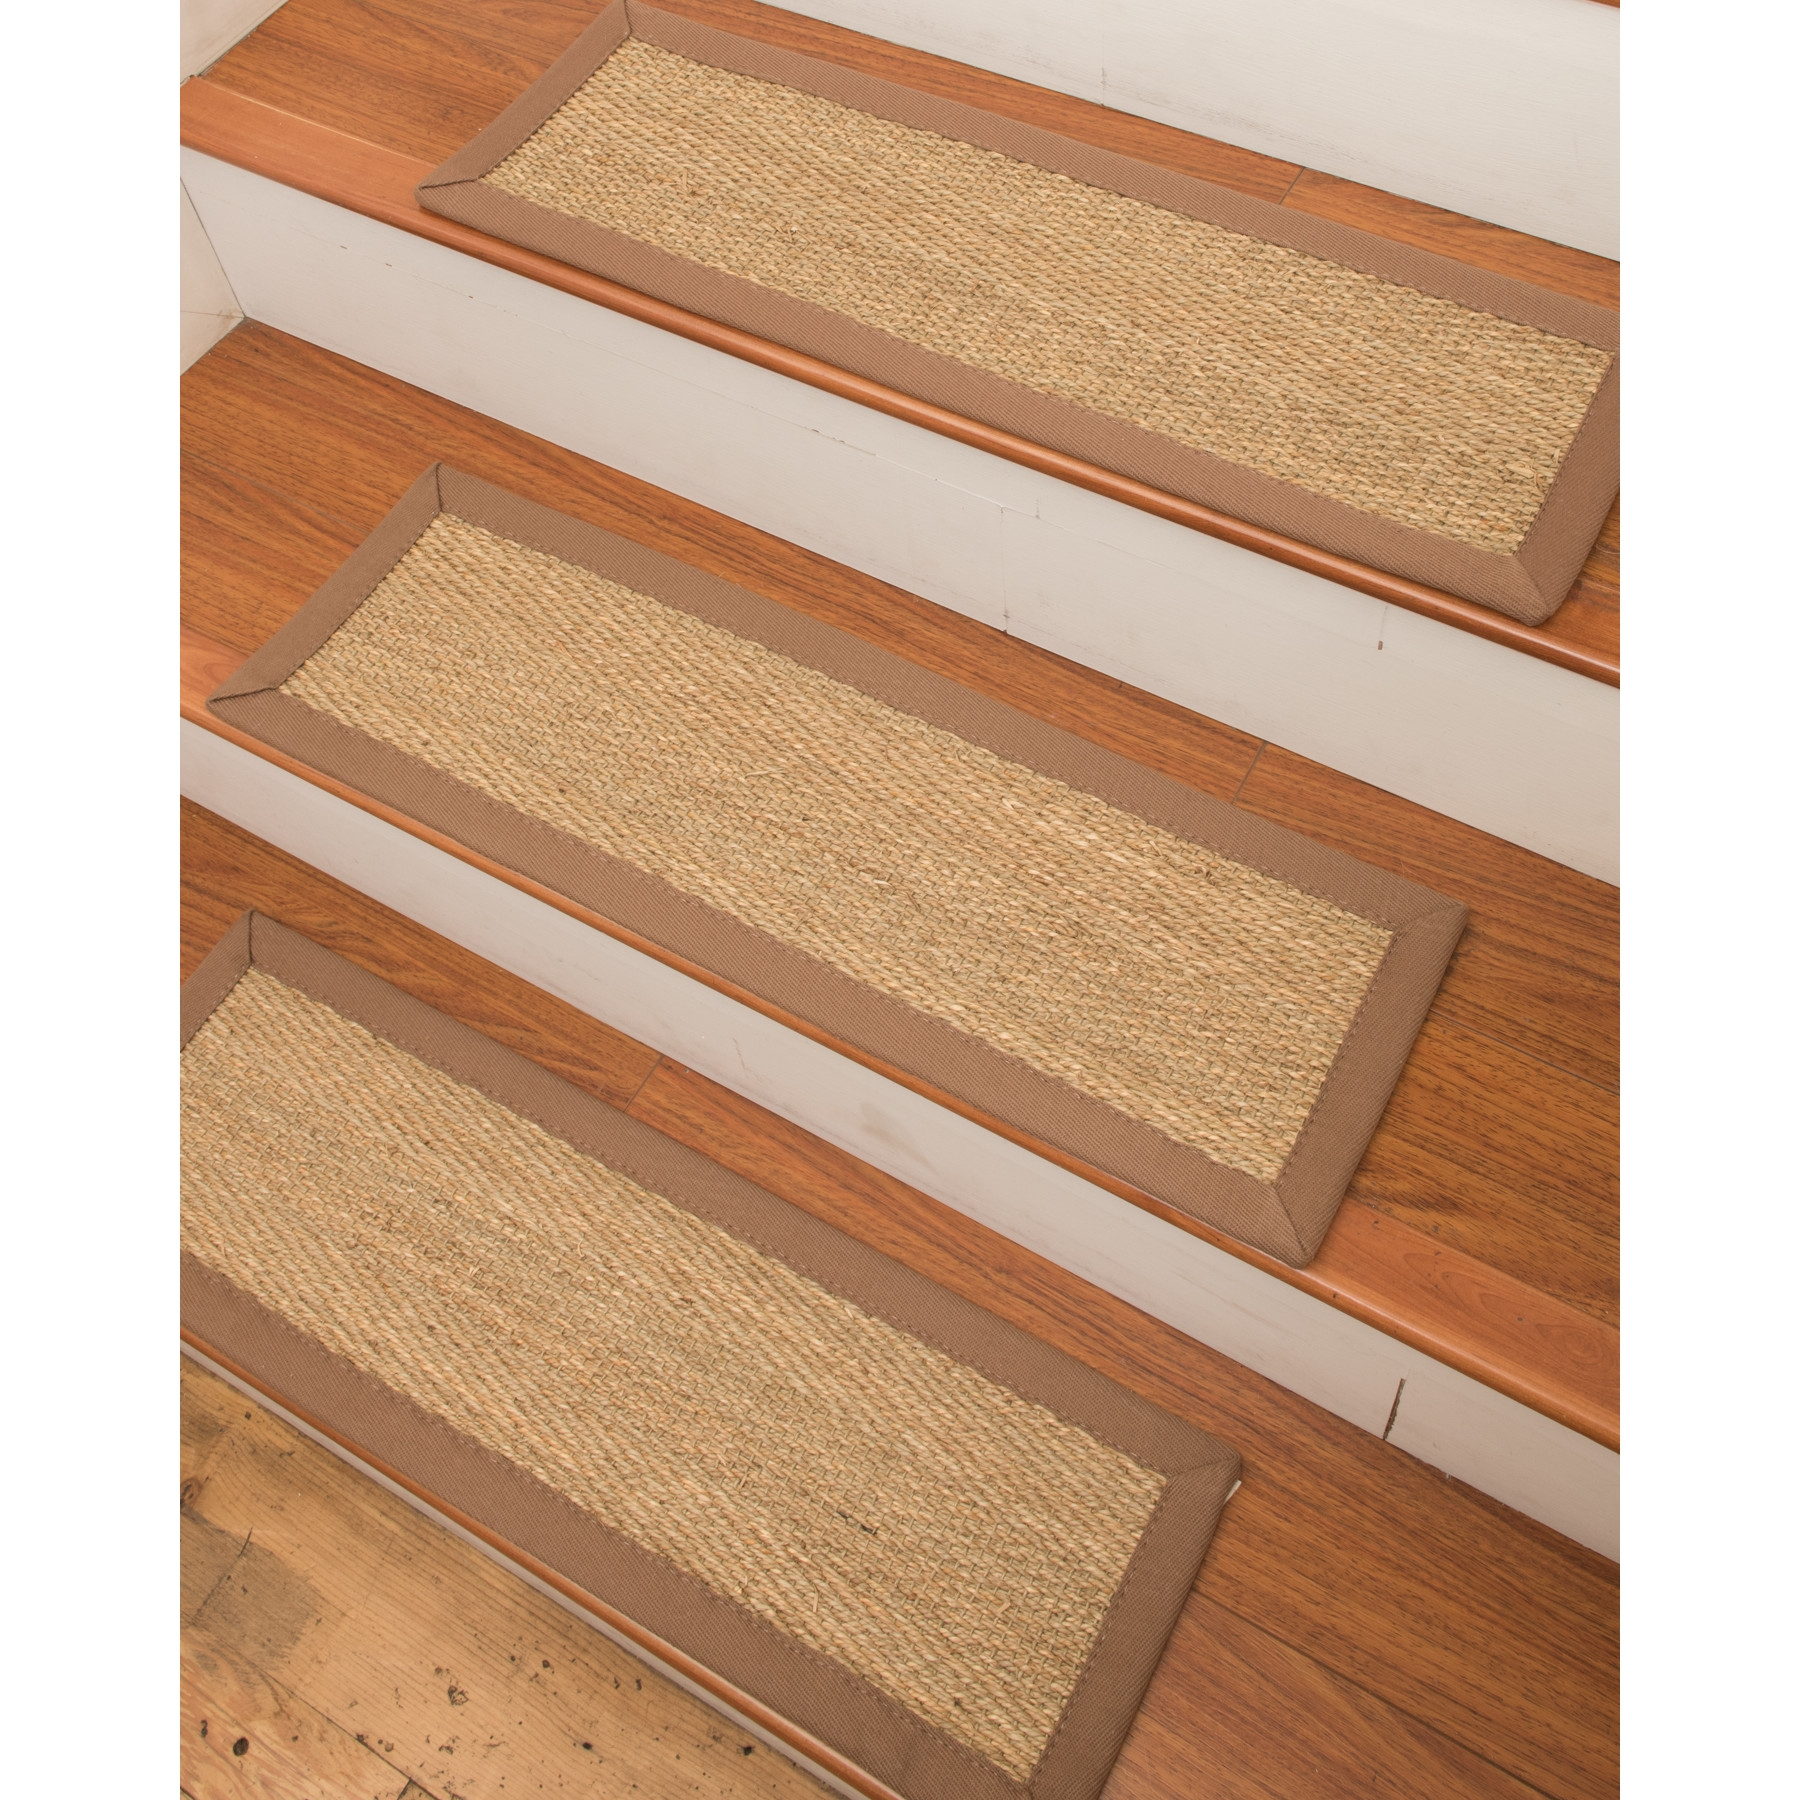 Natural Area Rugs Costa Rica Seagrass Carpet Beige Stair Tread With Stair Tread Rug Liners (Image 6 of 15)